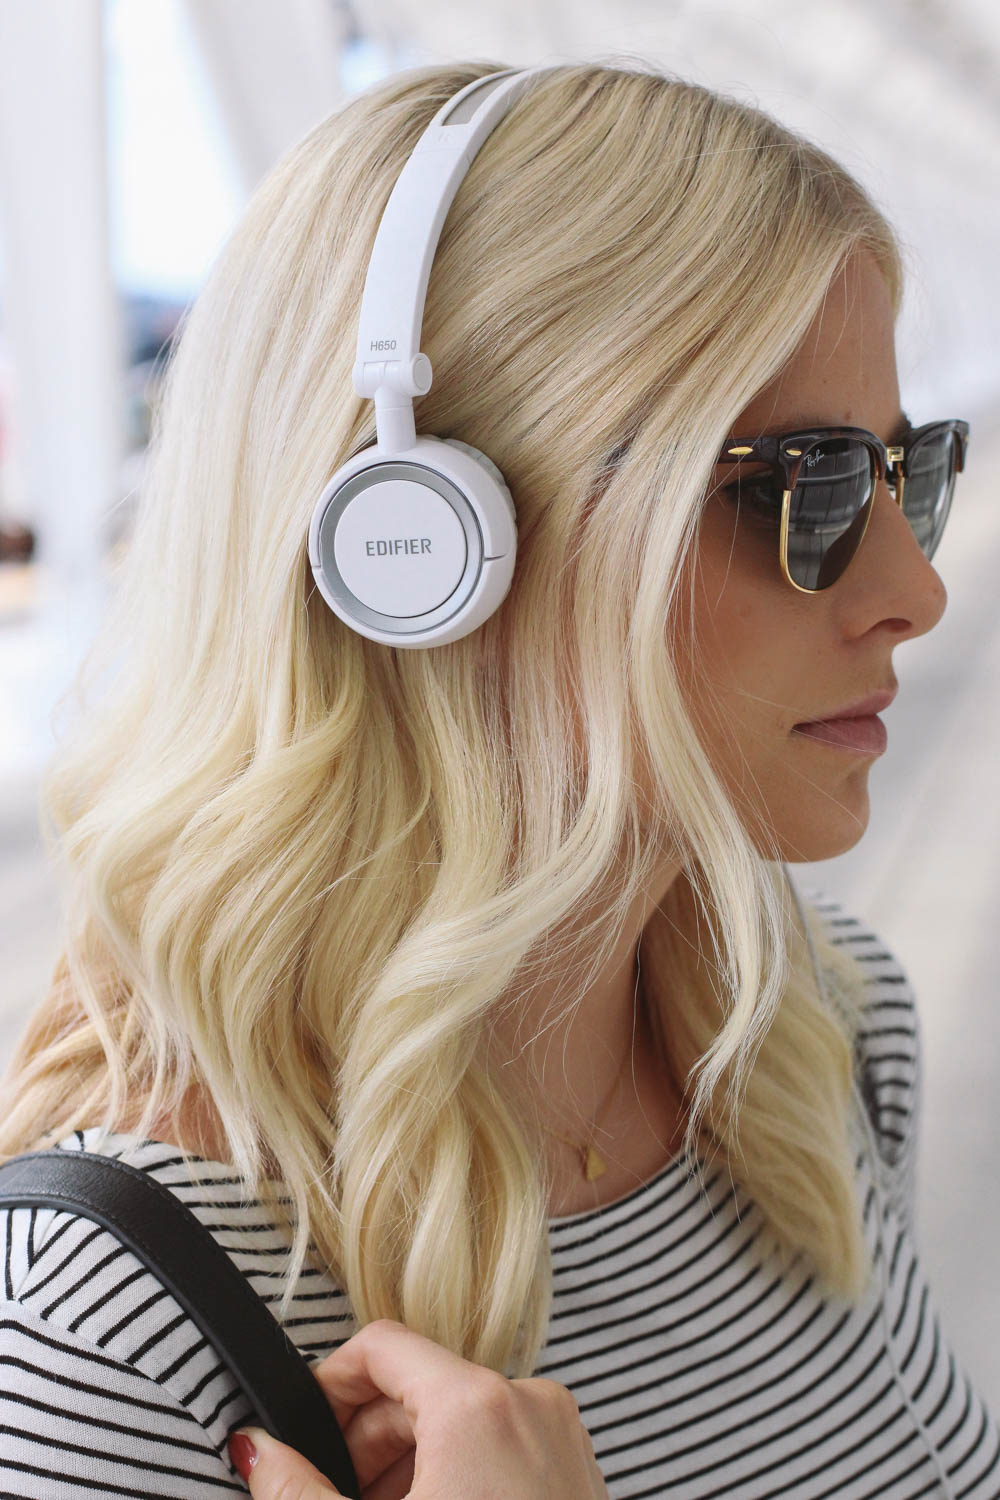 Good headphones are a MUST for plane rides.